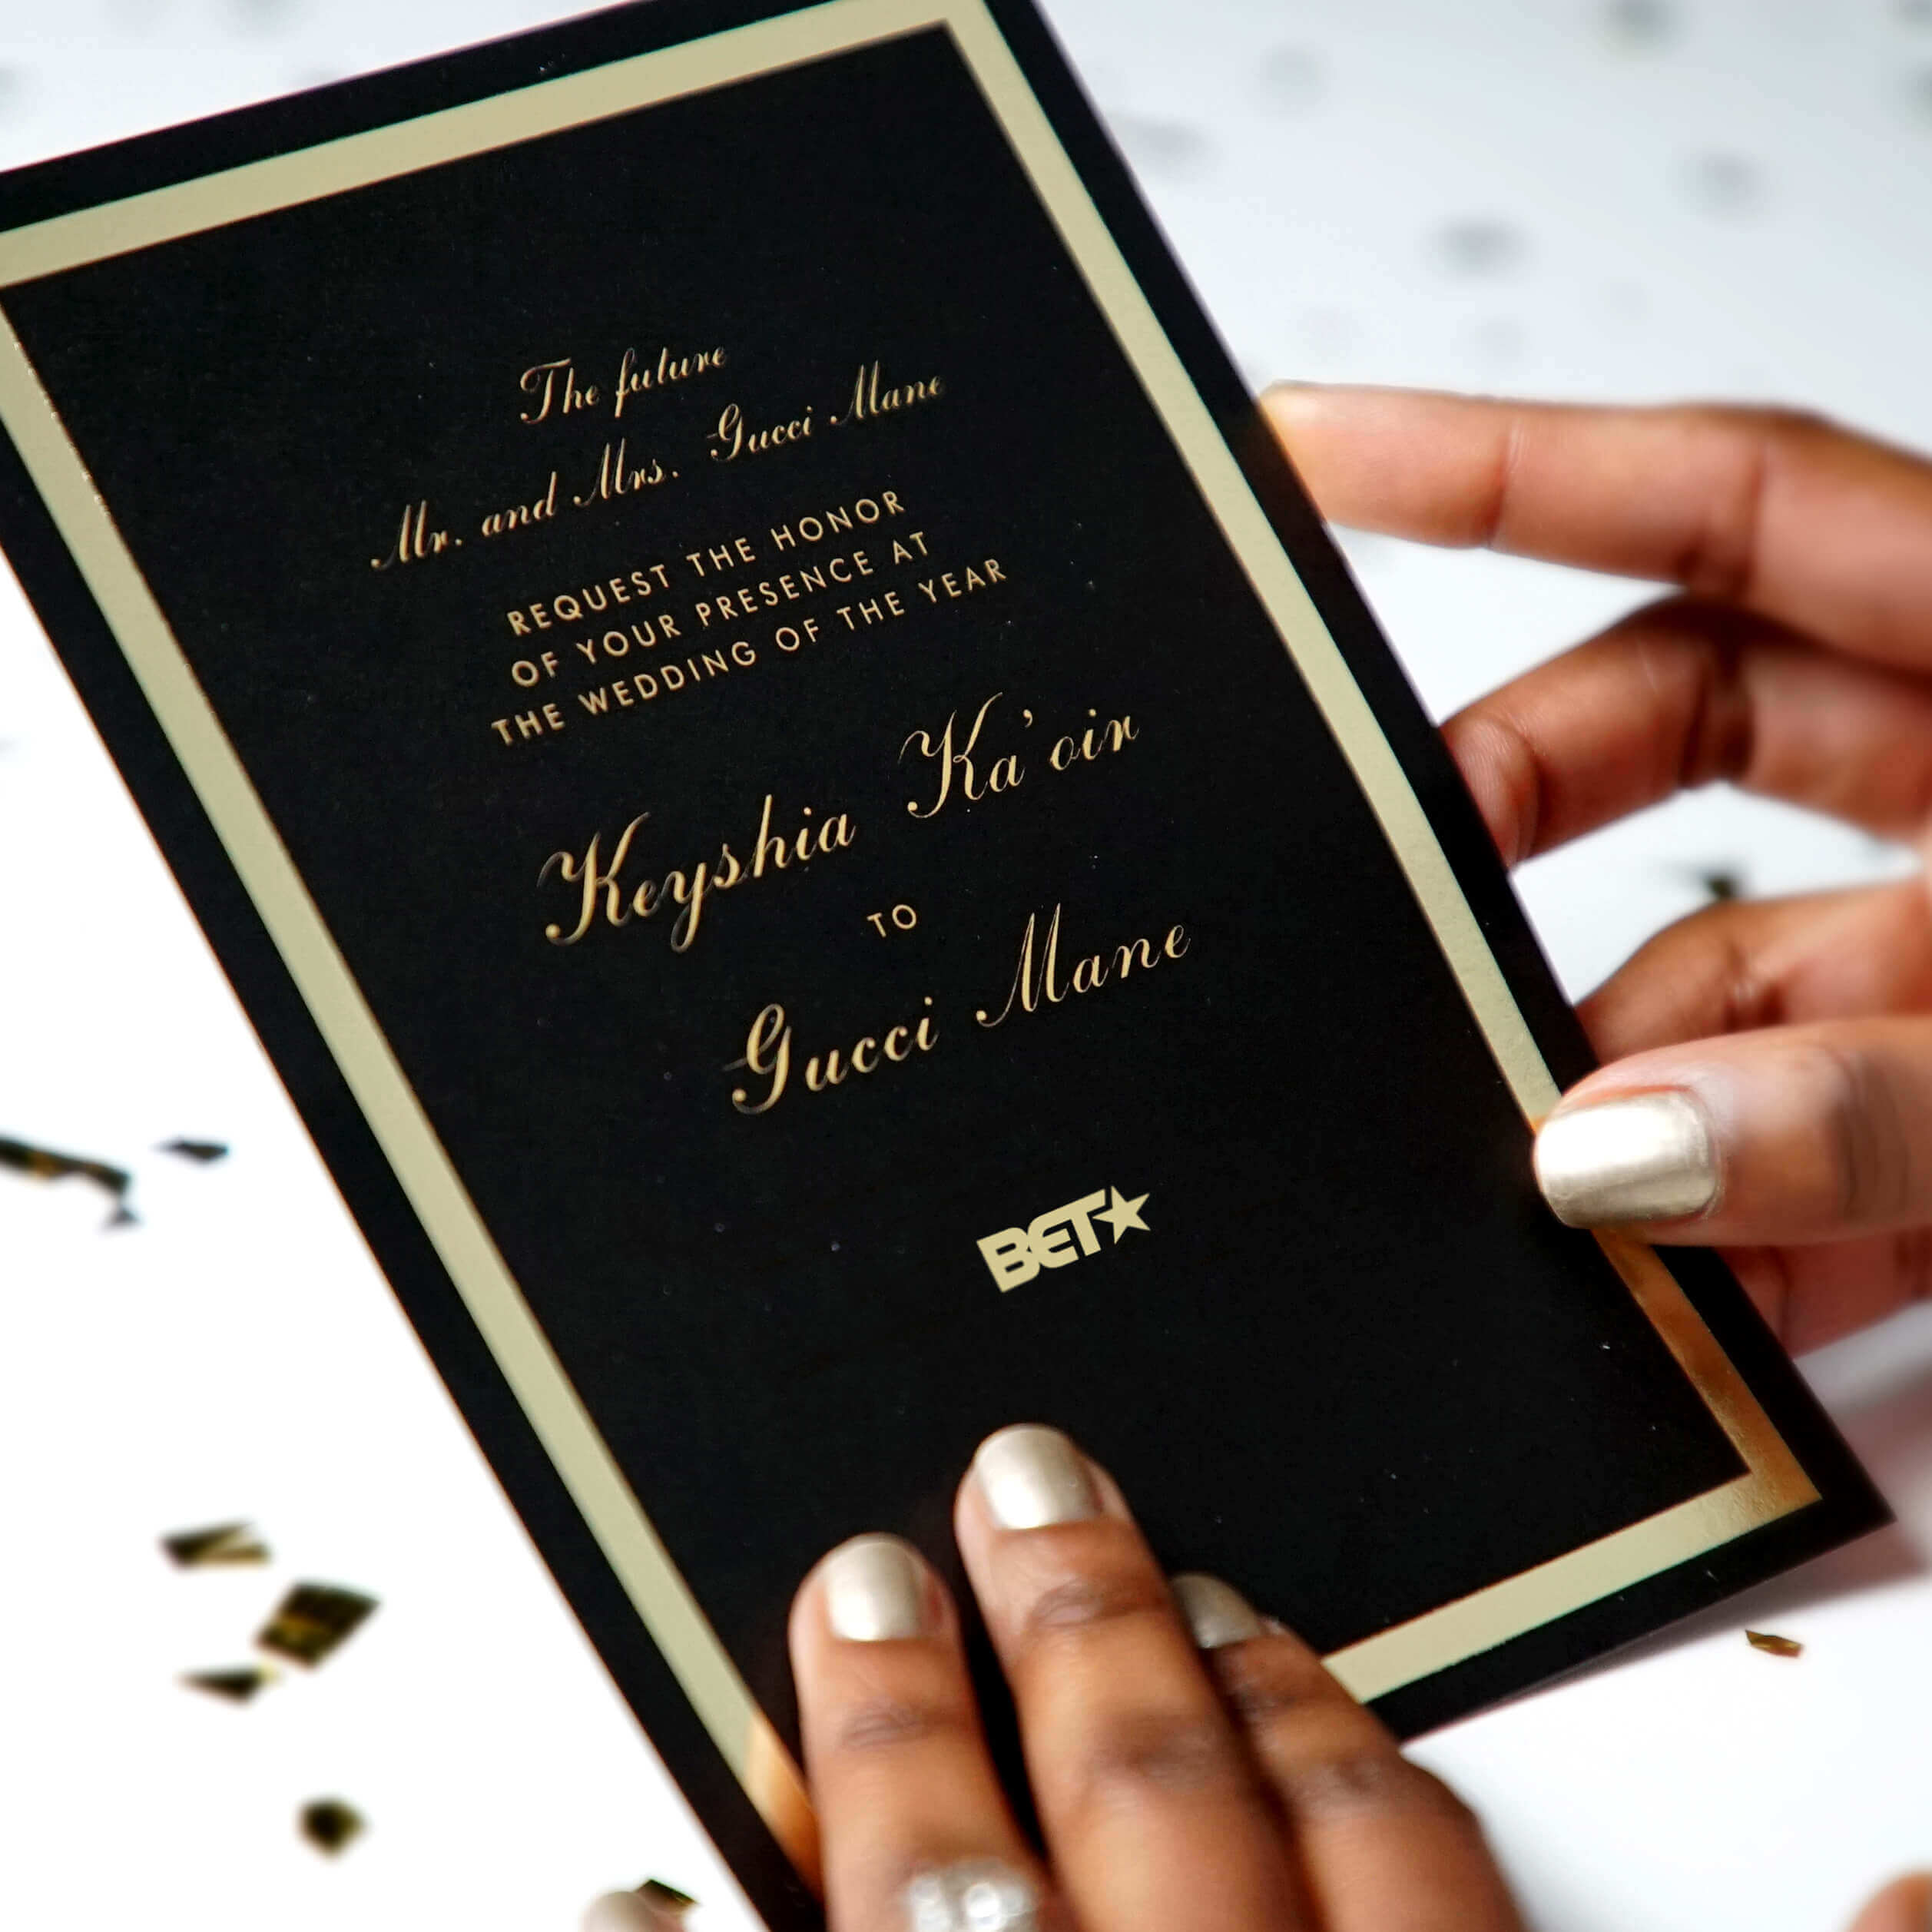 You are invited to the wedding of the year – Keyshia Ka'oir to Gucci Mane.